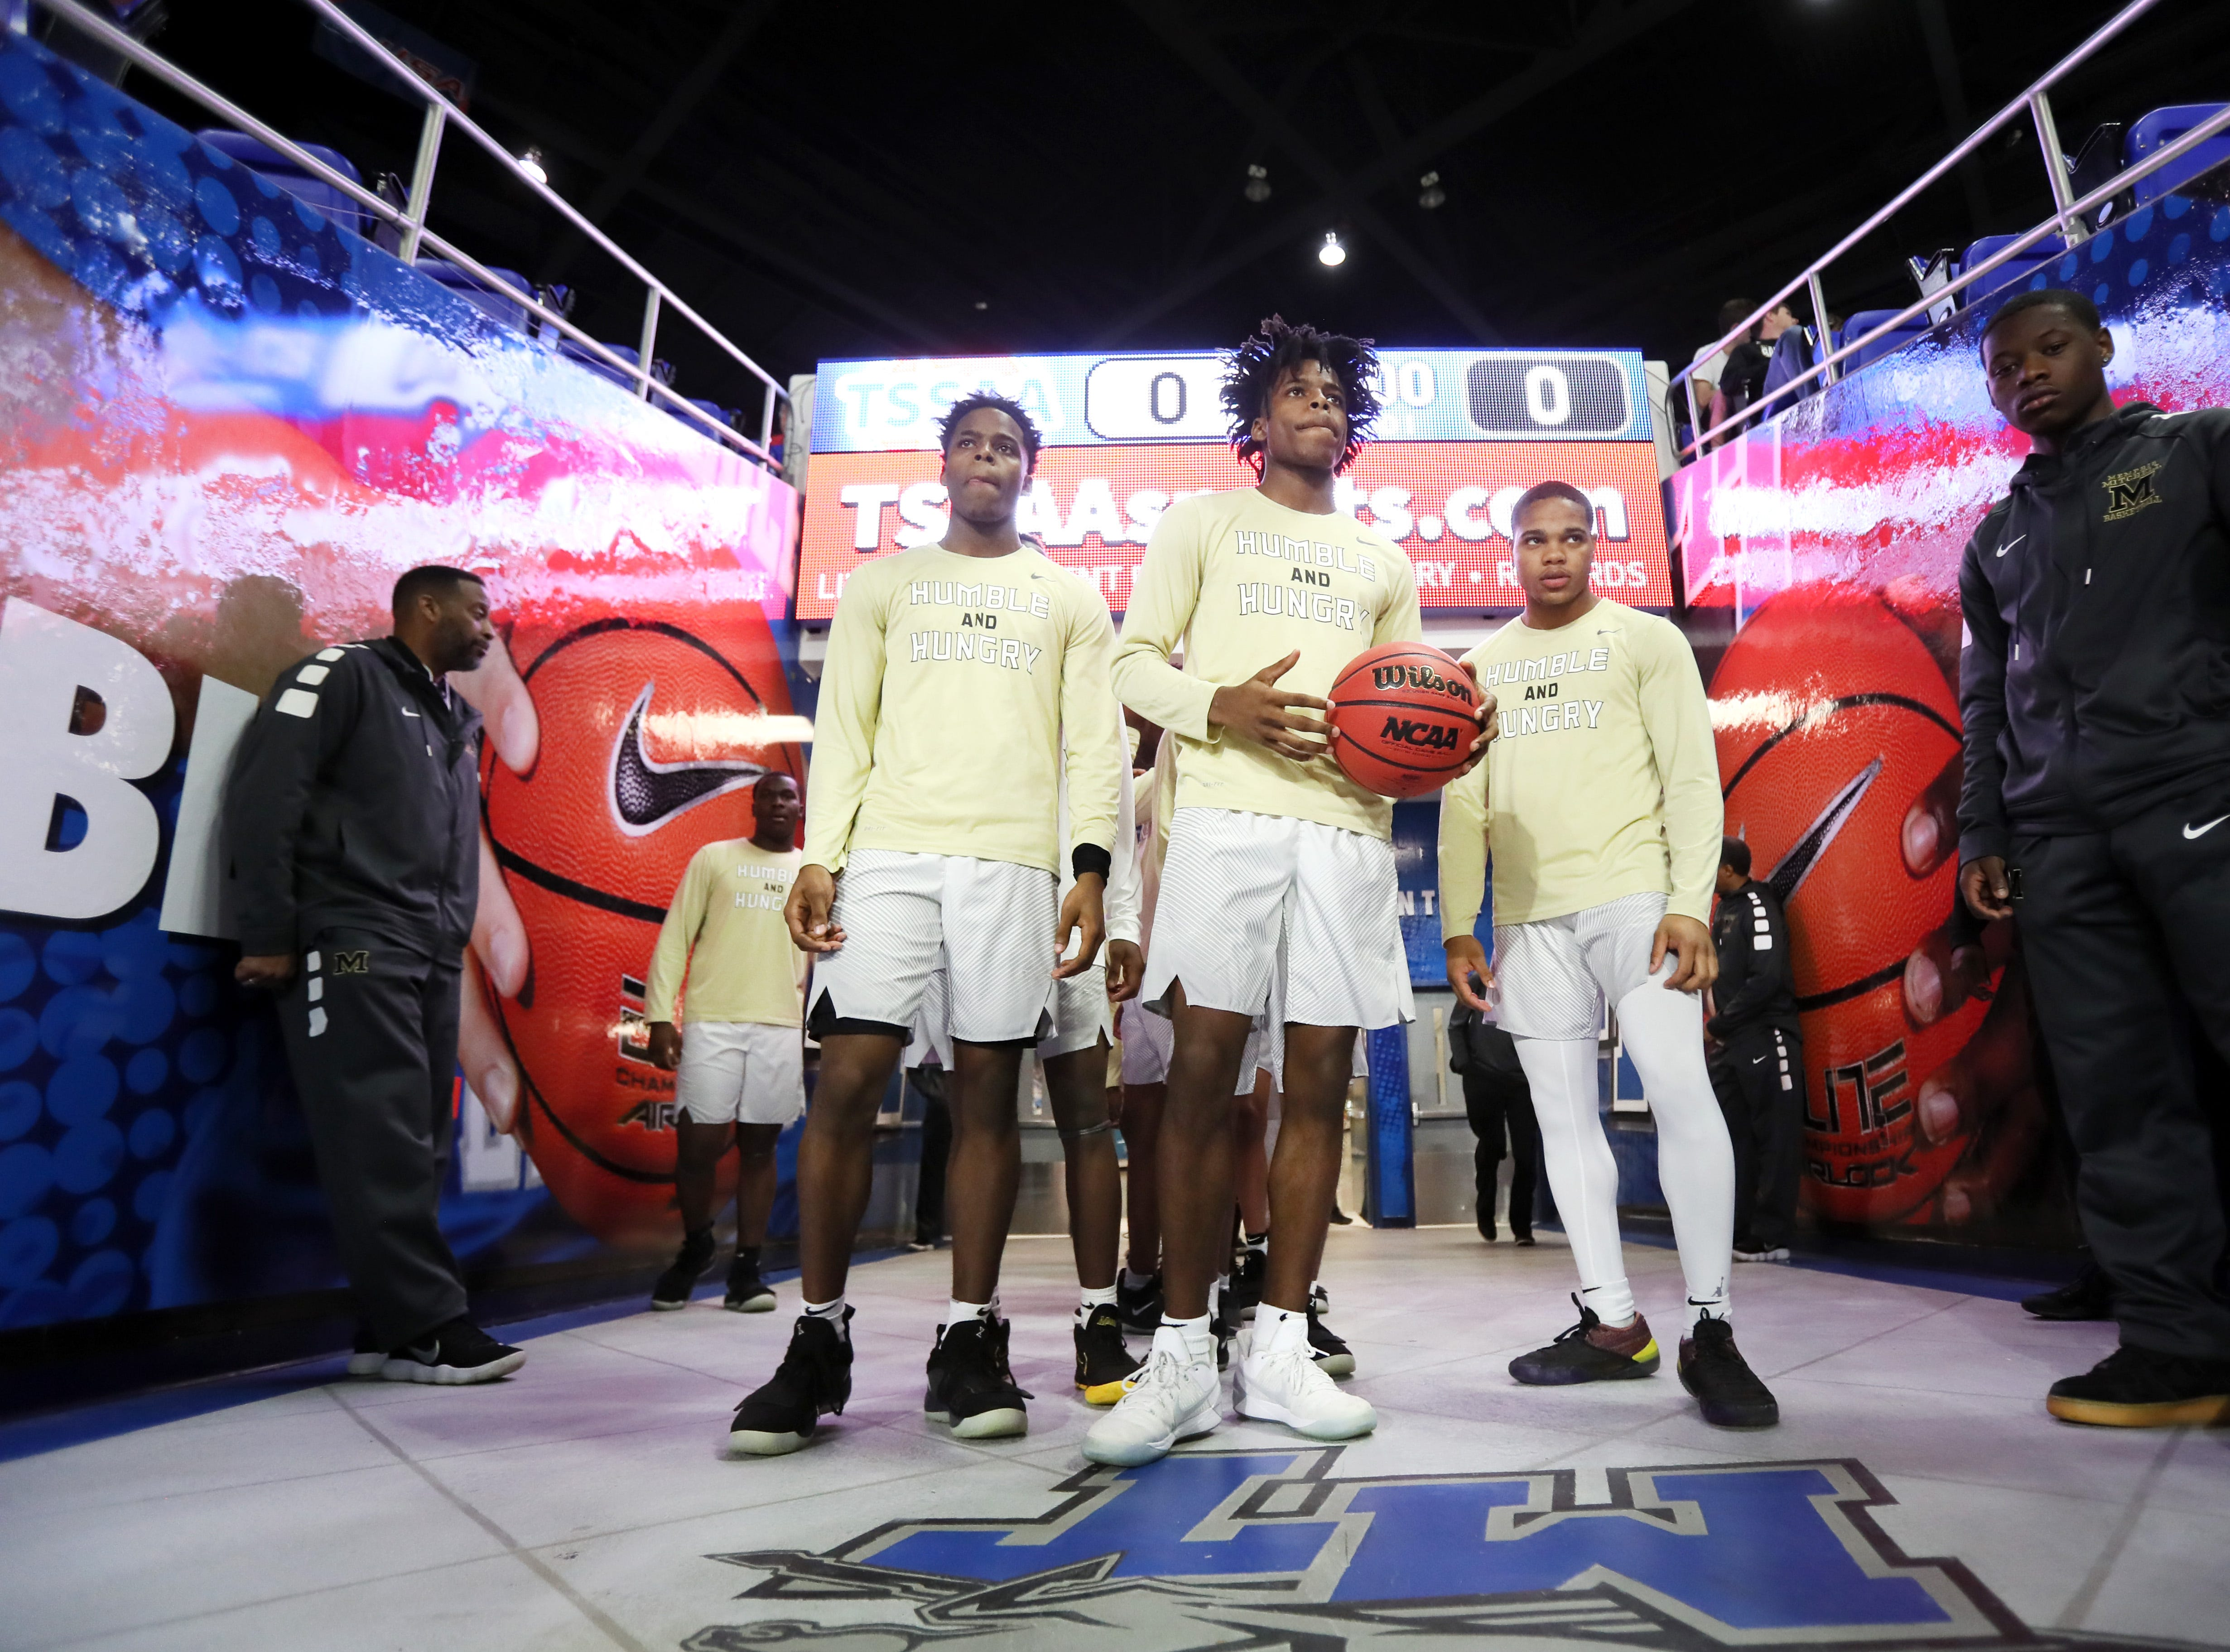 Mitchell players prepare to take the court for their game against Fulton during their TSSAA Division I basketball state tournament in Murfreesboro on Wednesday, March 13, 2019.